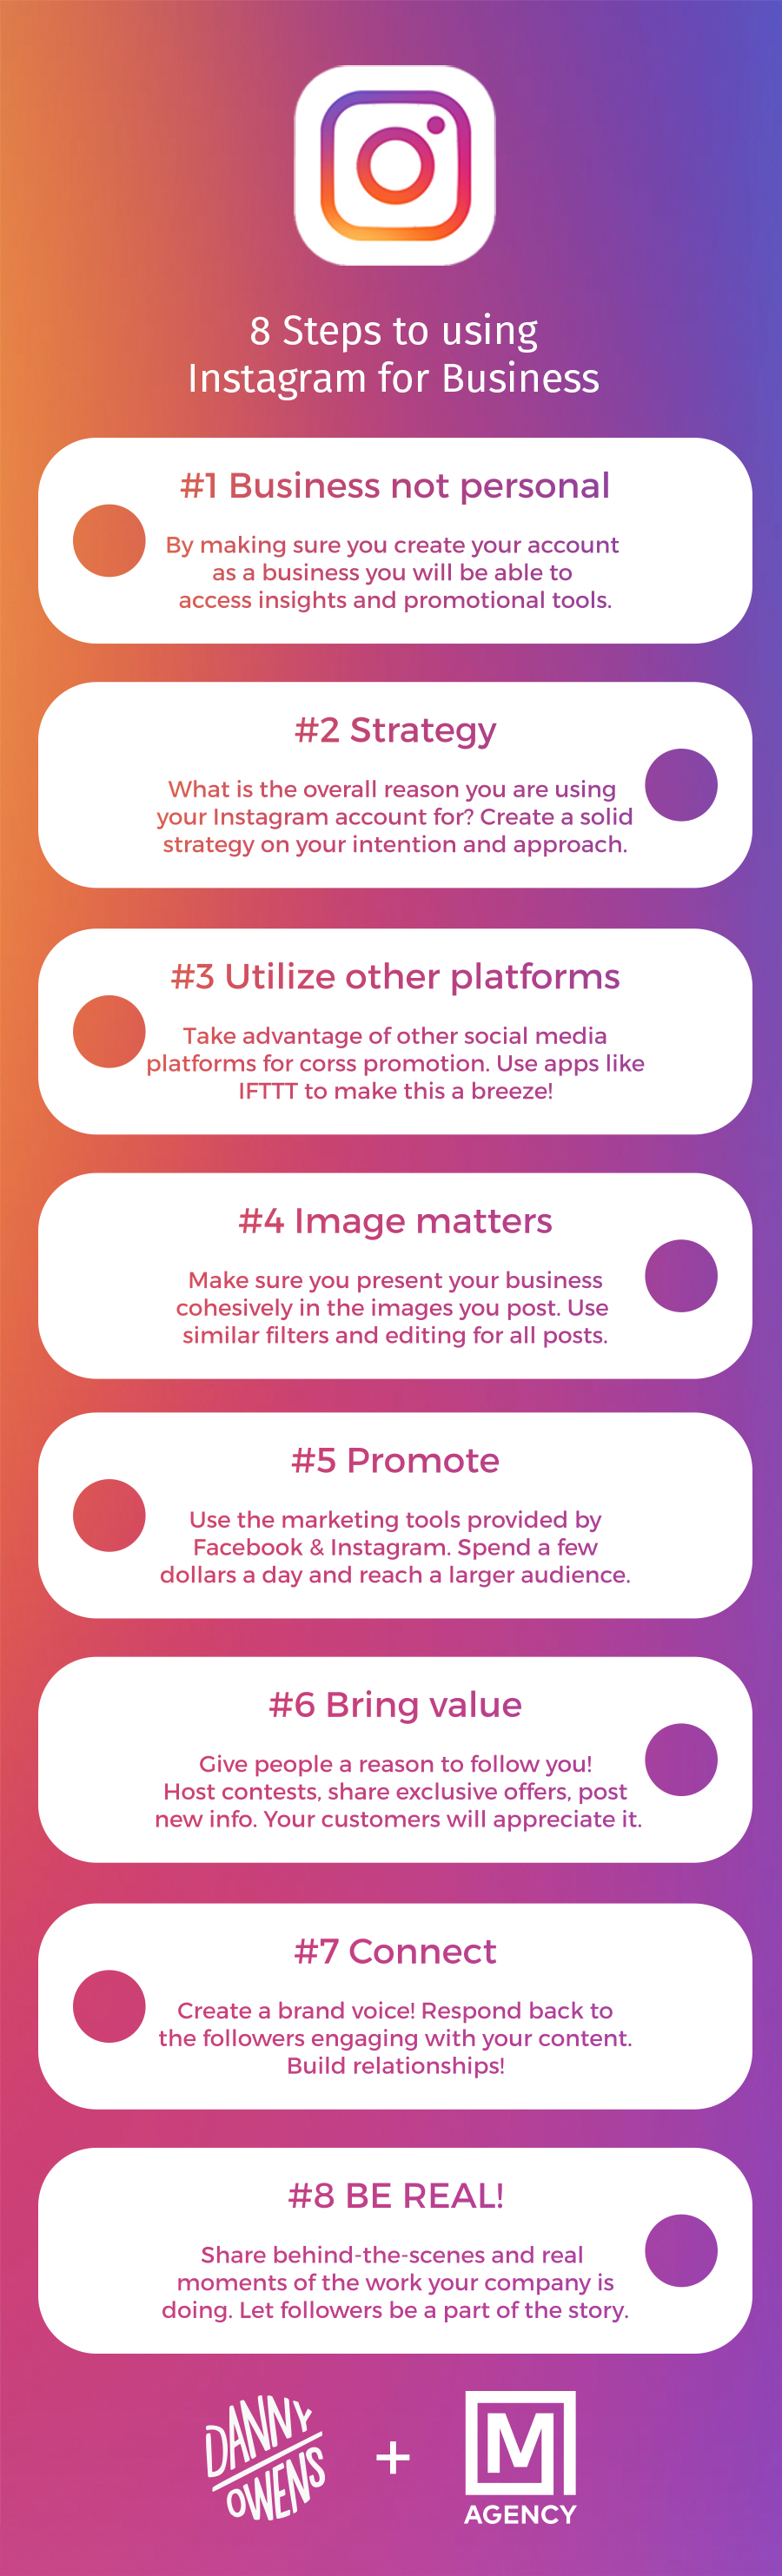 M Agency Instagram for Business infographic